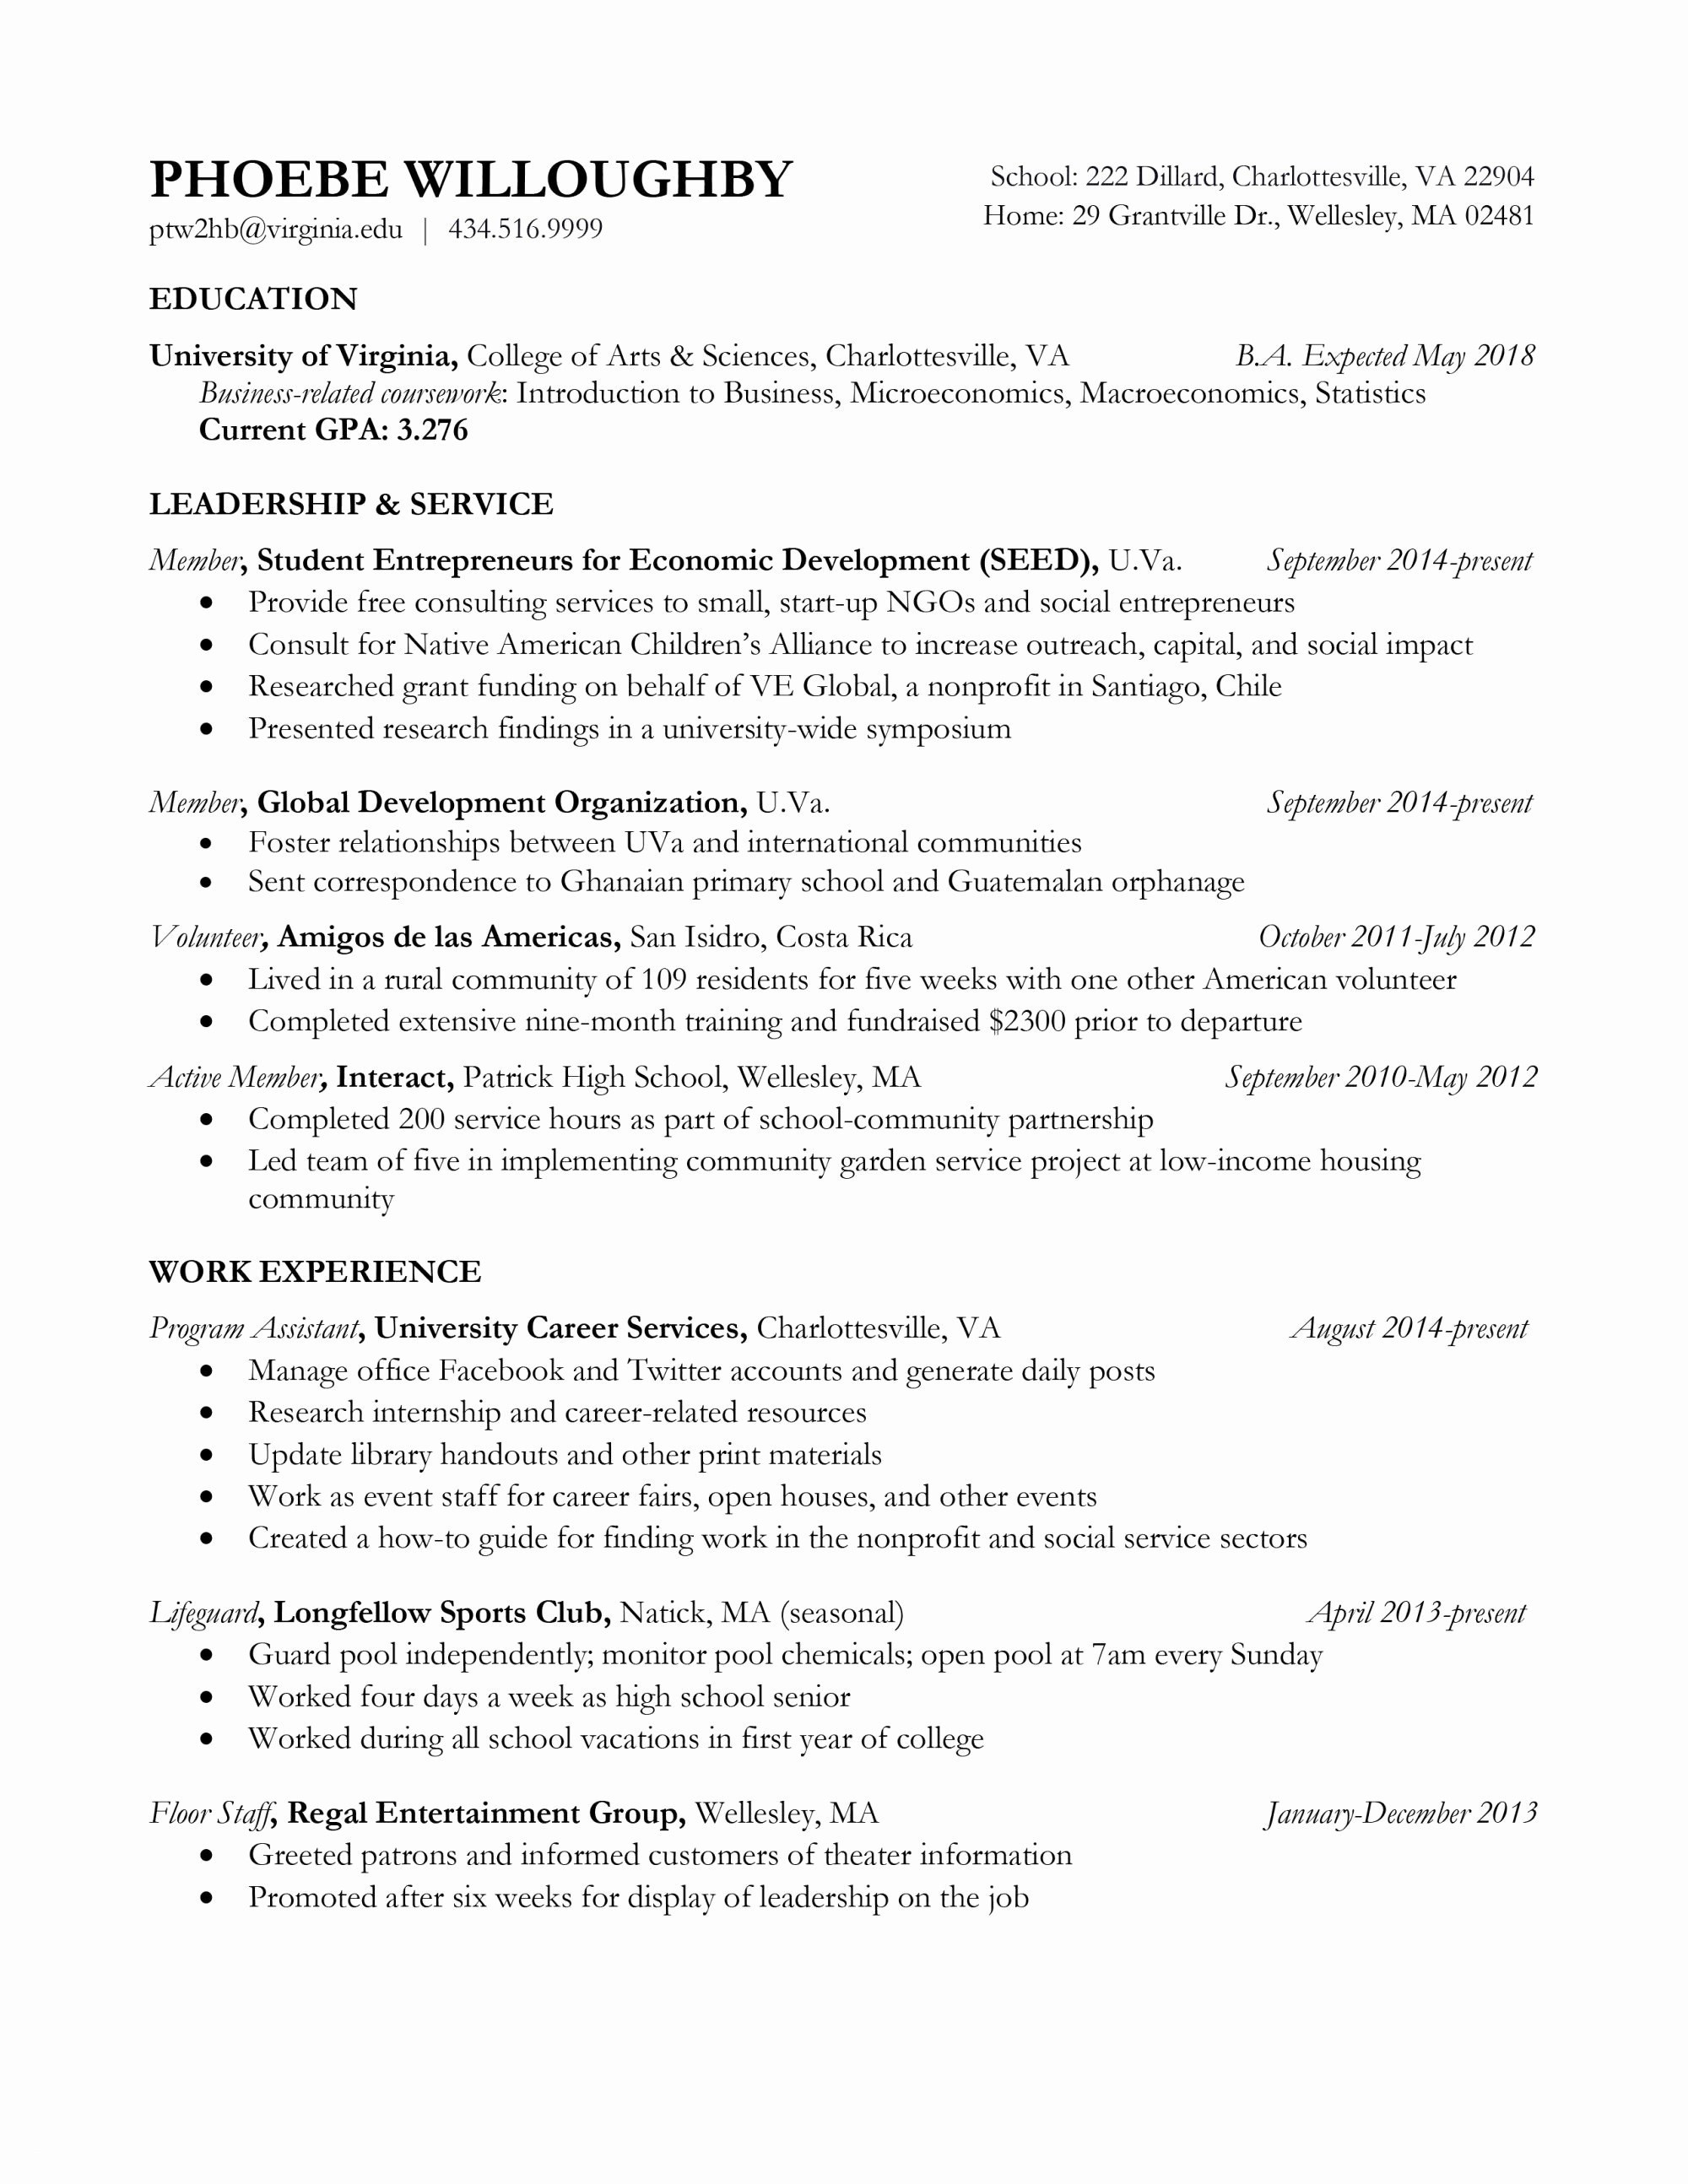 Resume Template Free - Retail Resume Template Free Inspirationa Chef Resume Samples Awesome